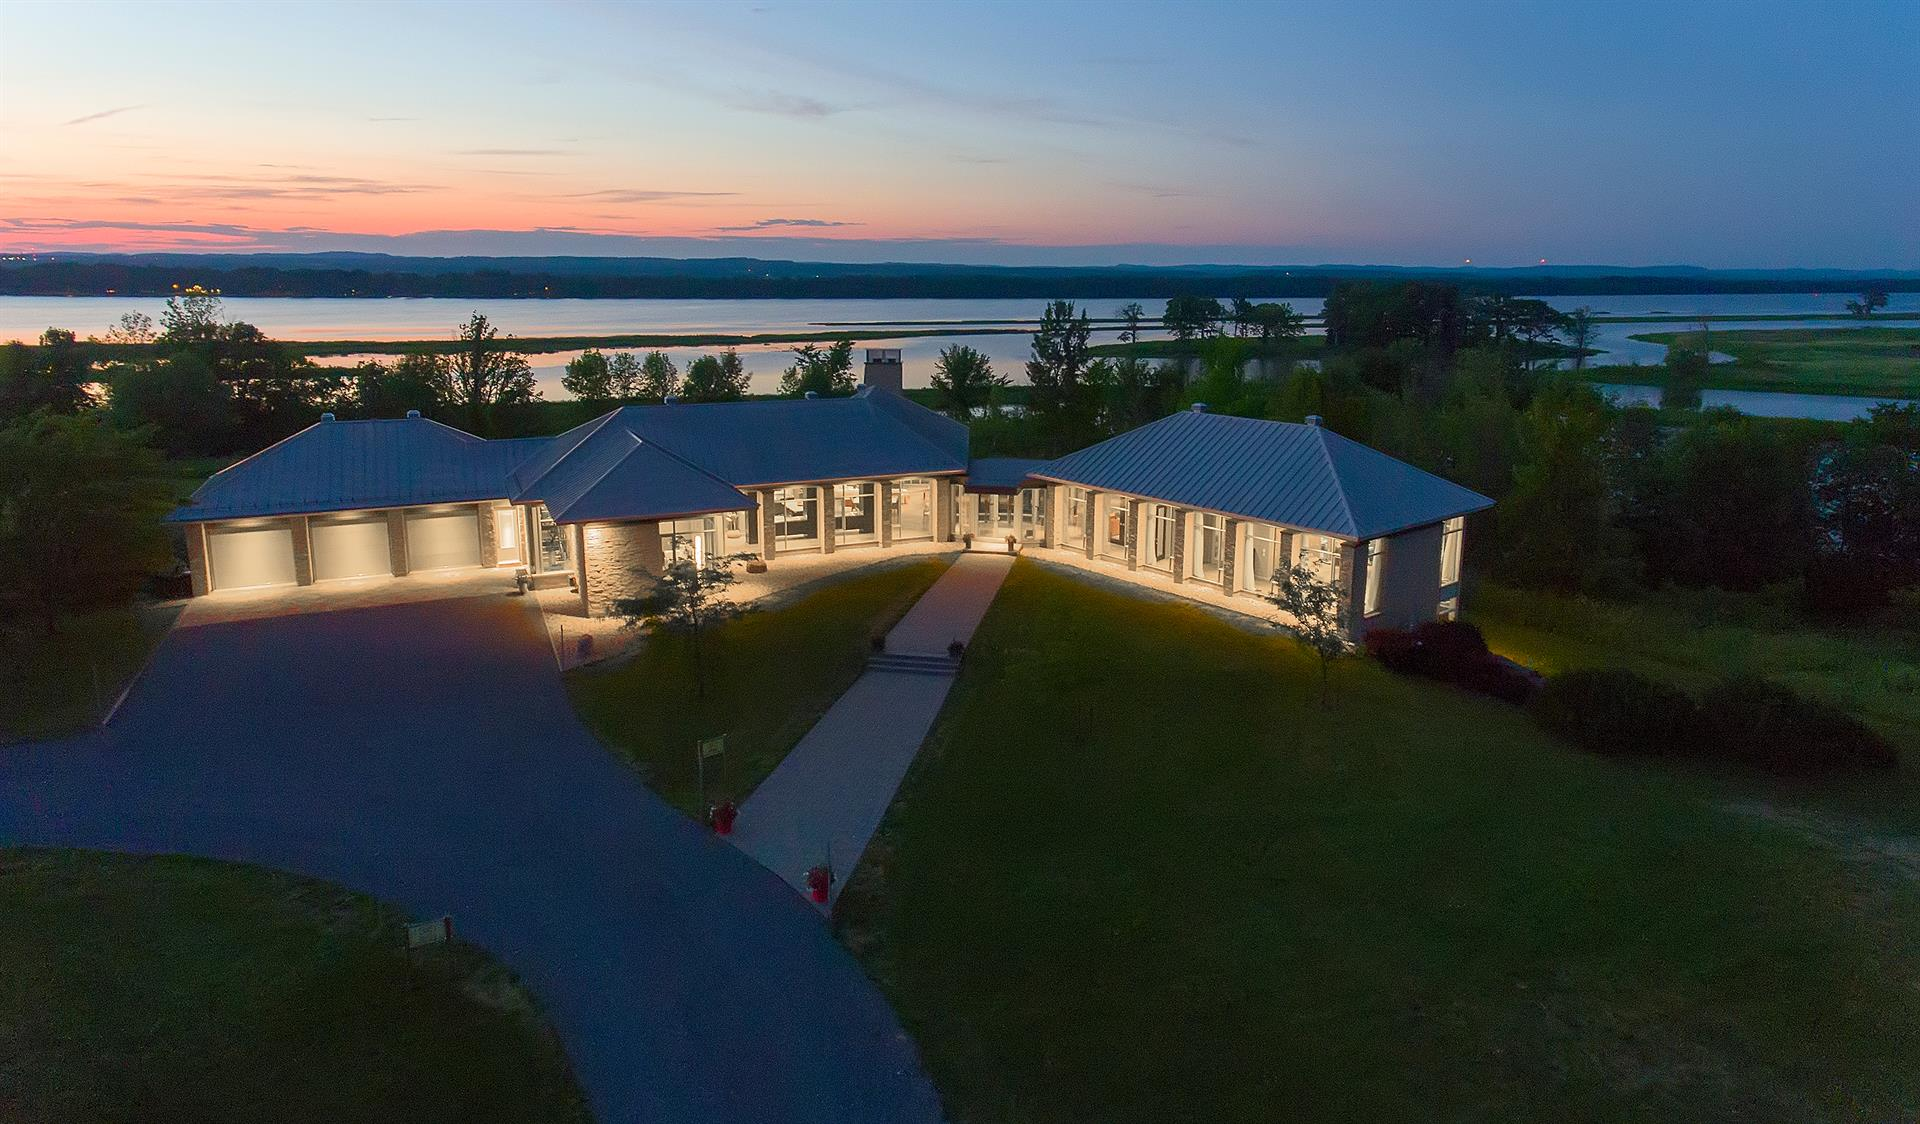 Salle De Bain Beton Et Bois ~ contemporary masterpiece a luxury home for sale in ottawa southern